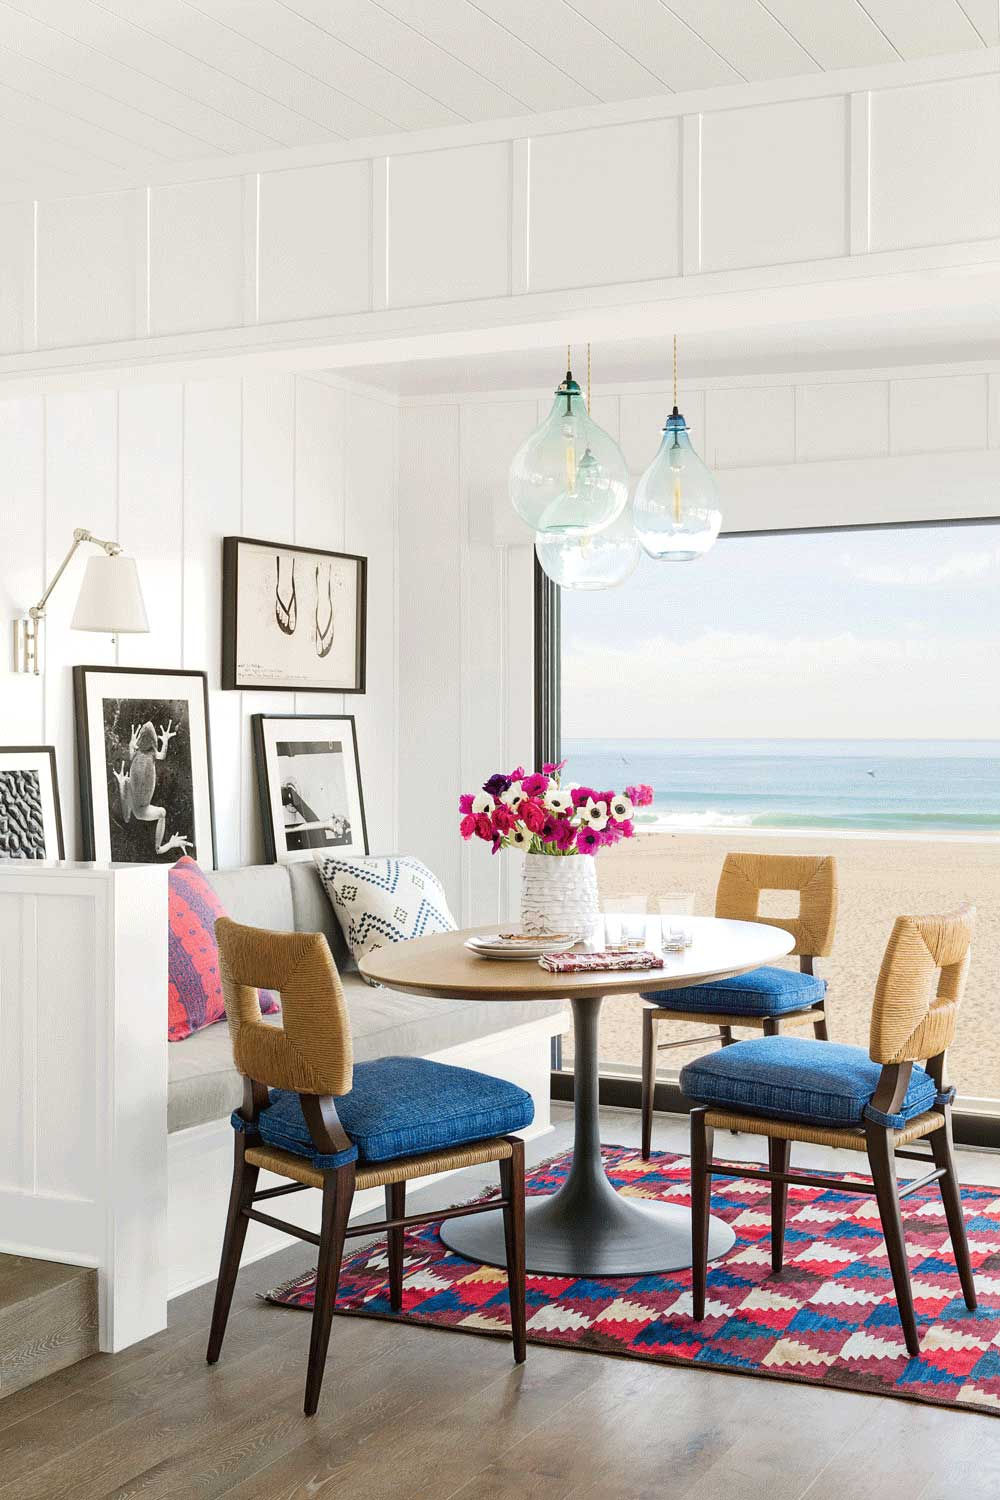 A breakfast nook in a Pacific Ocean-front house in Hermosa Beach, designed by Los Angeles residential architecture firm Tim Barber Ltd. and Peter Dunham Interior Design.